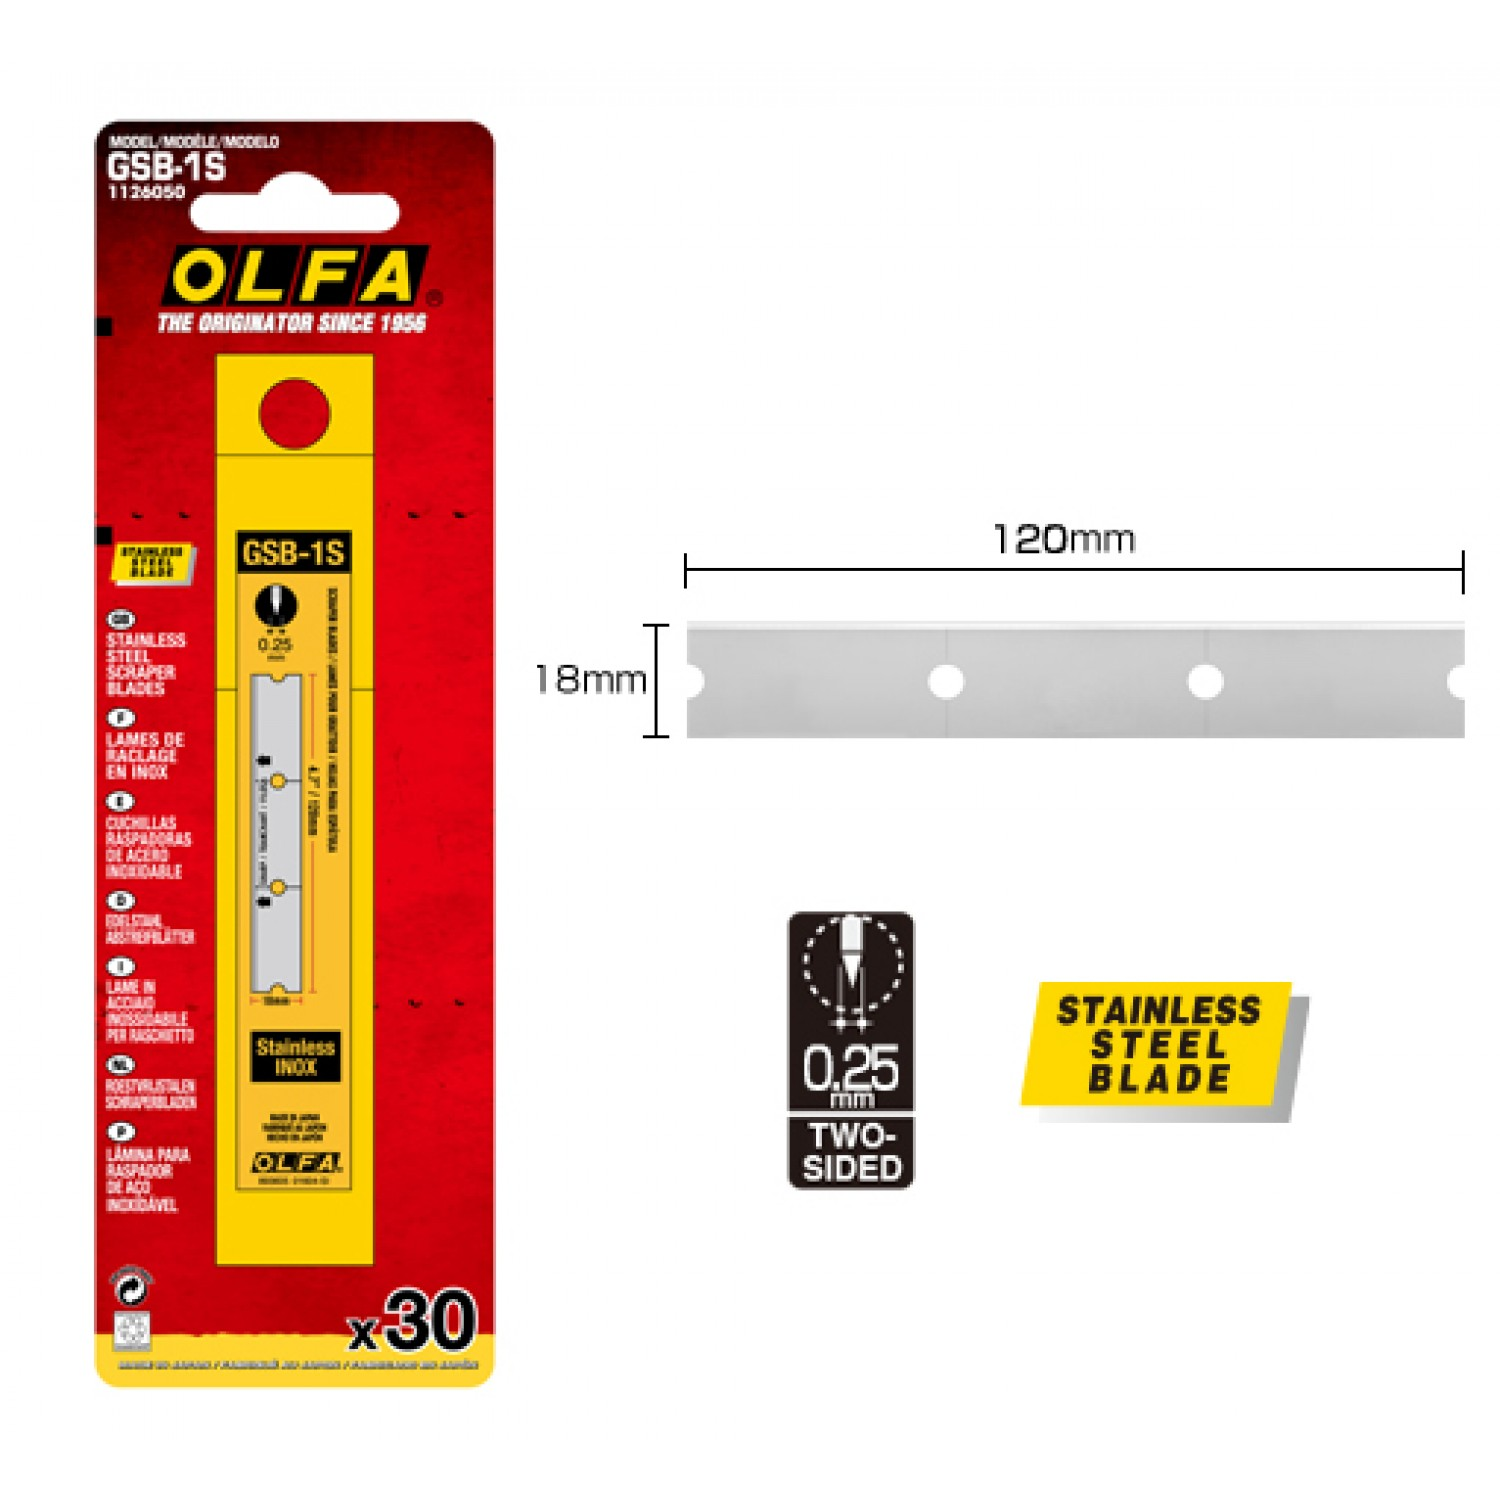 Olfa GSB-1S Stainless Steel Scraper Blades, 30-Pack, Dimensions